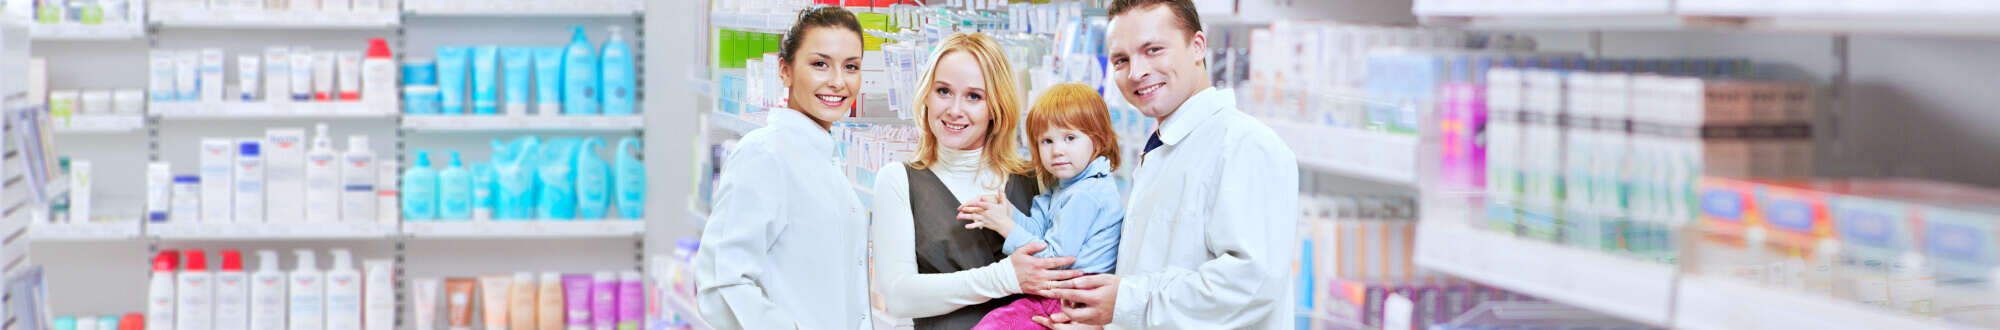 pharmacists and woman carrying her child smiling